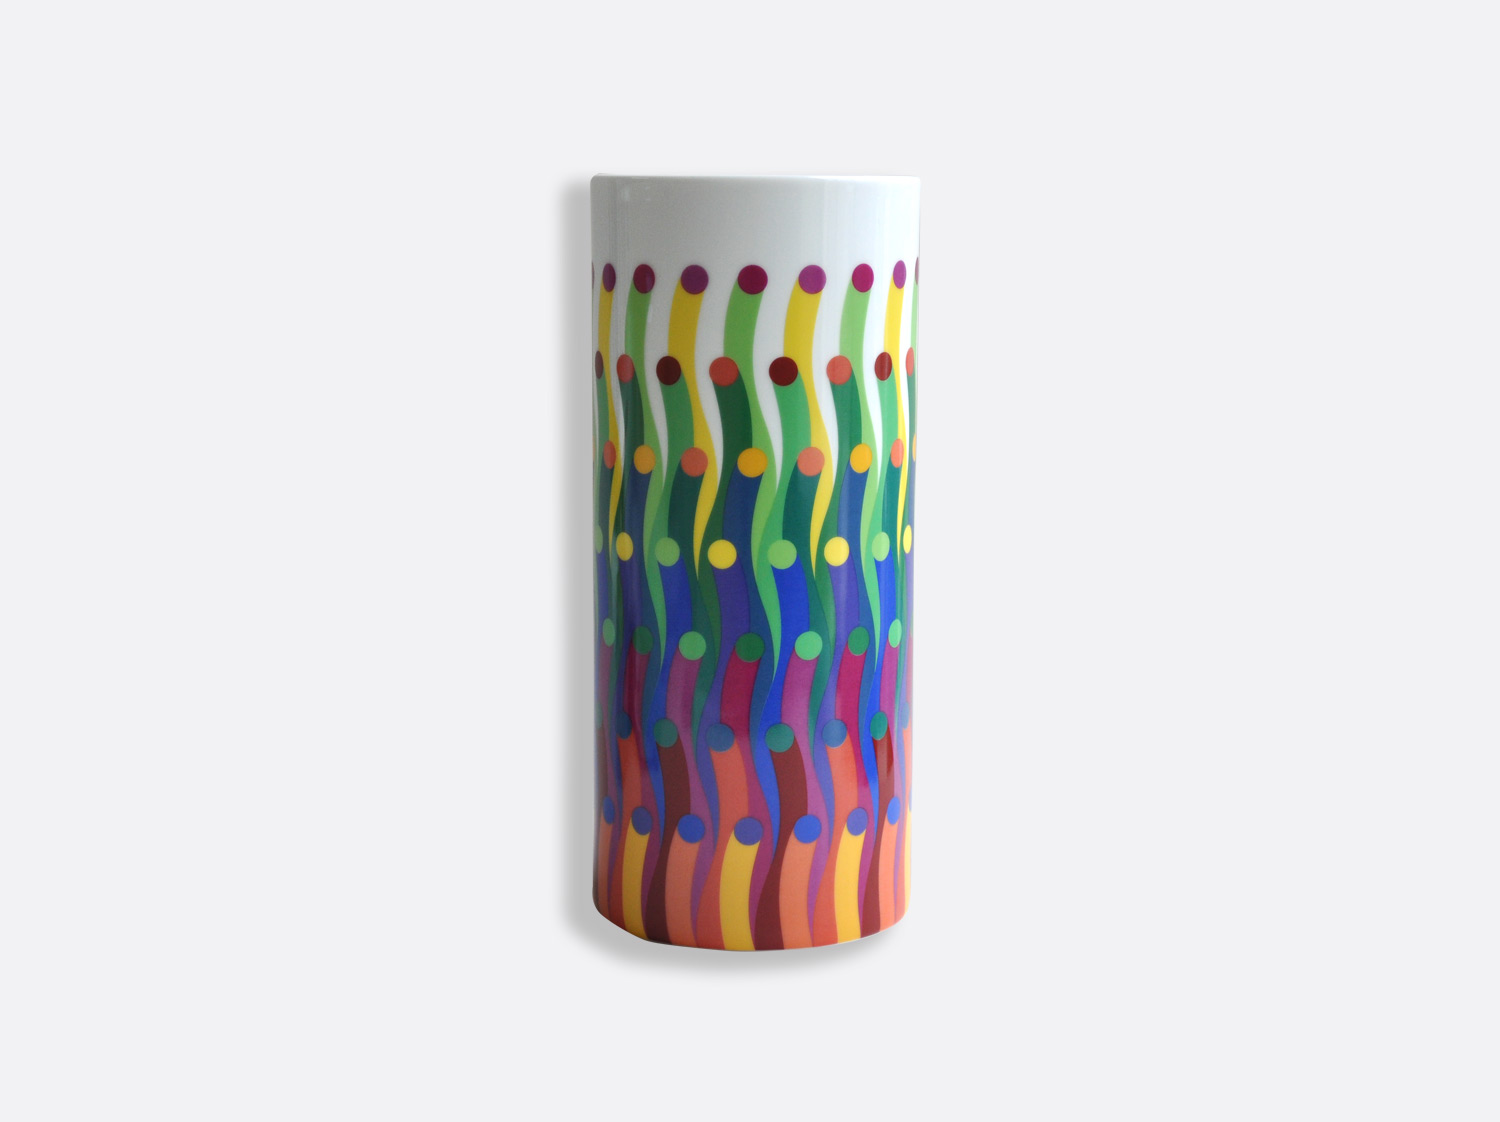 China Tube vase H. 28 cm D. 12 cm of the collection Surface colorée 1702 | Bernardaud